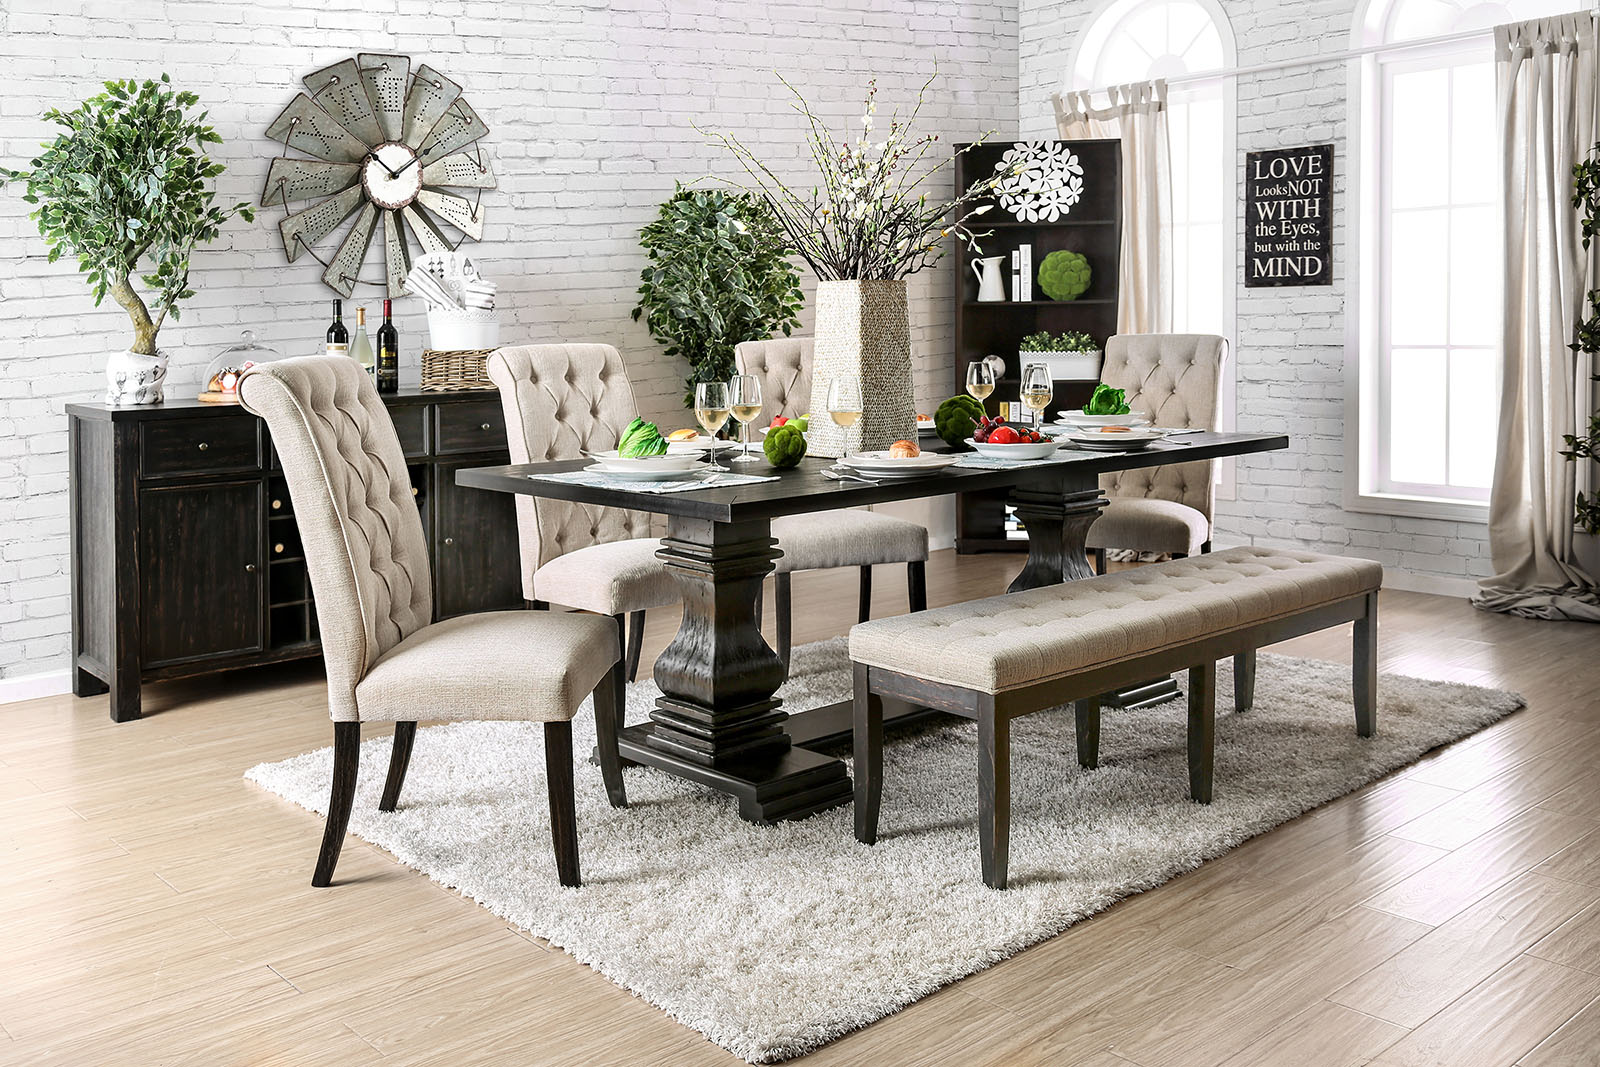 NERISSA 6PC DINING TABLE SET 4 SIDE CHAIR BENCH